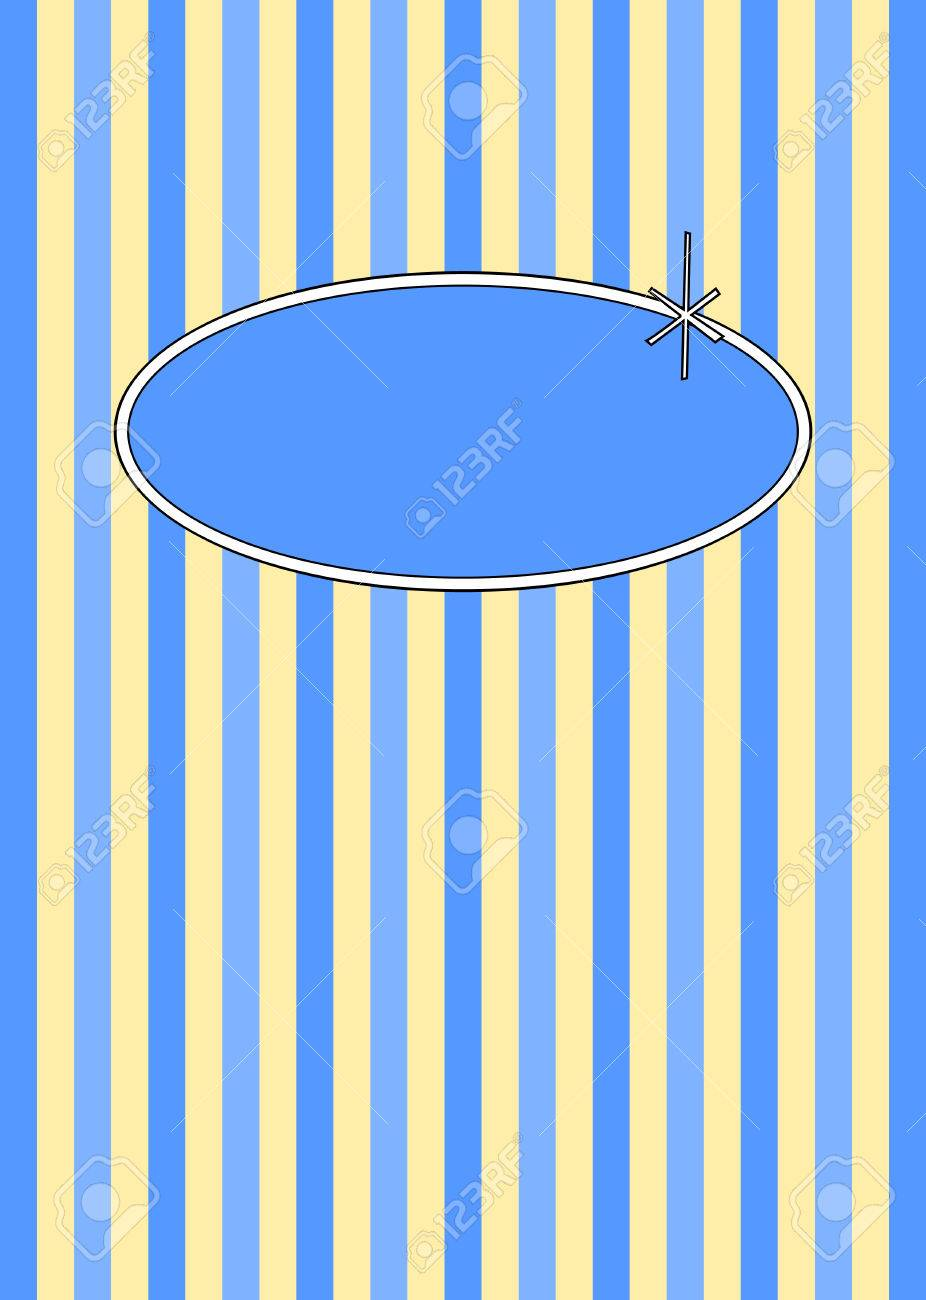 1950s retro candy stripes design with copyspace. Stock Vector - 5603985